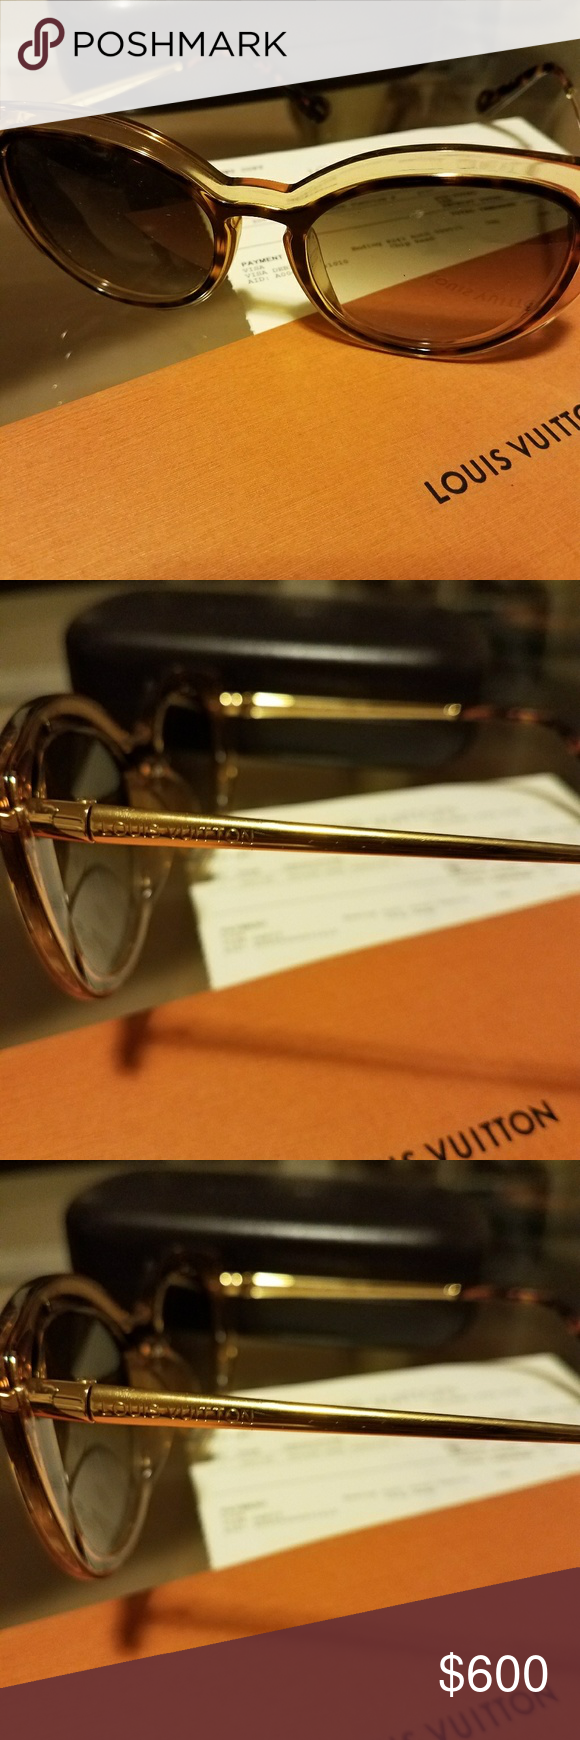 b62da7ec8ac15 Louis Vuitton Willow Dark Tortoise Sunglasses LOUIS VUITTON WILLOW DARK  SUNGLASSES. In excellent condition only used once . Comes with box and  receipt Louis ...